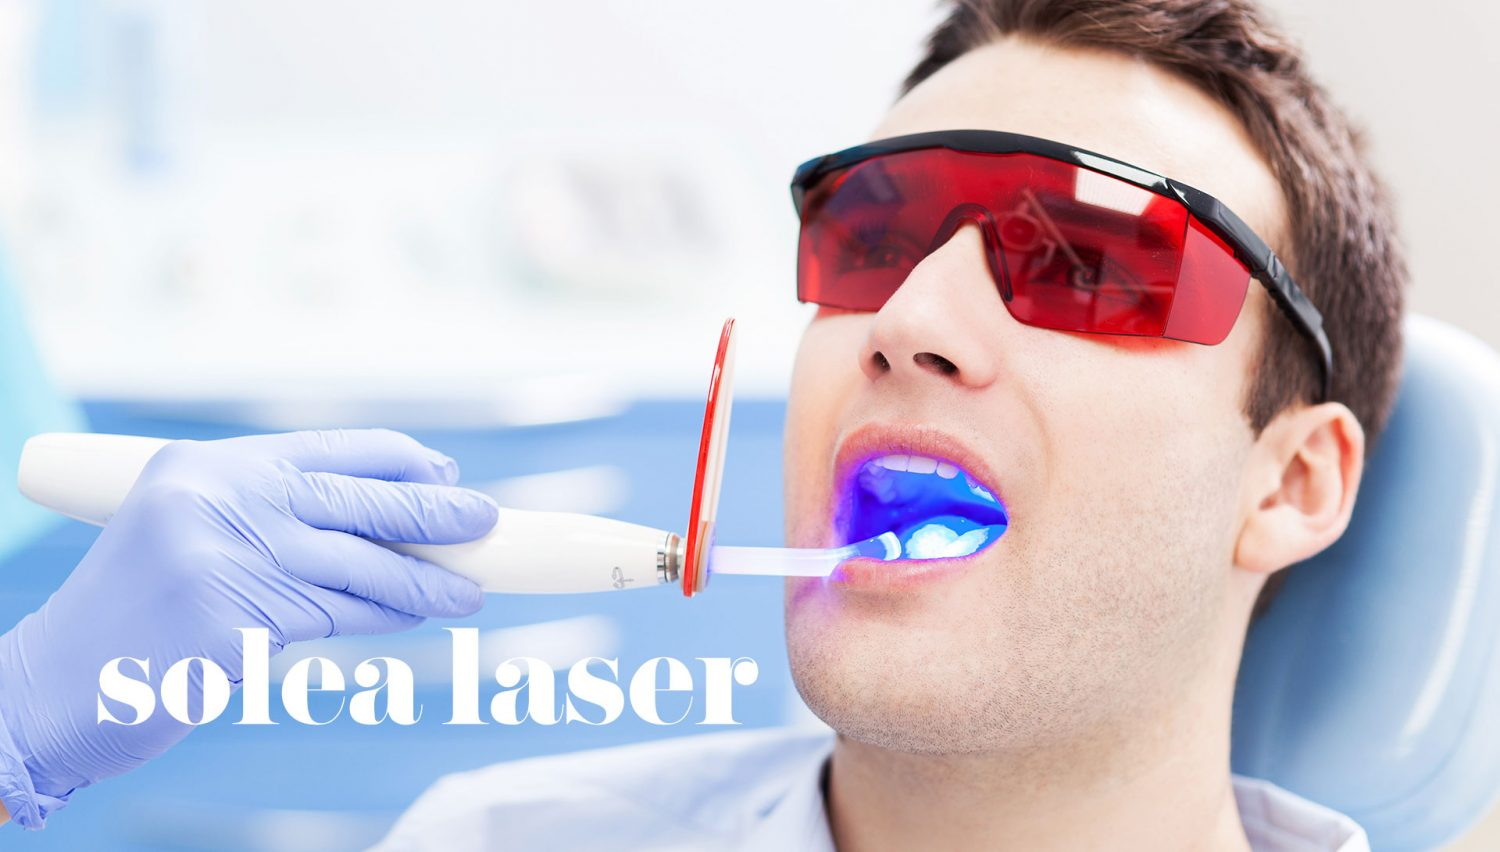 The Benefits of Solea Laser Dentistry in Oro Valley, AZ